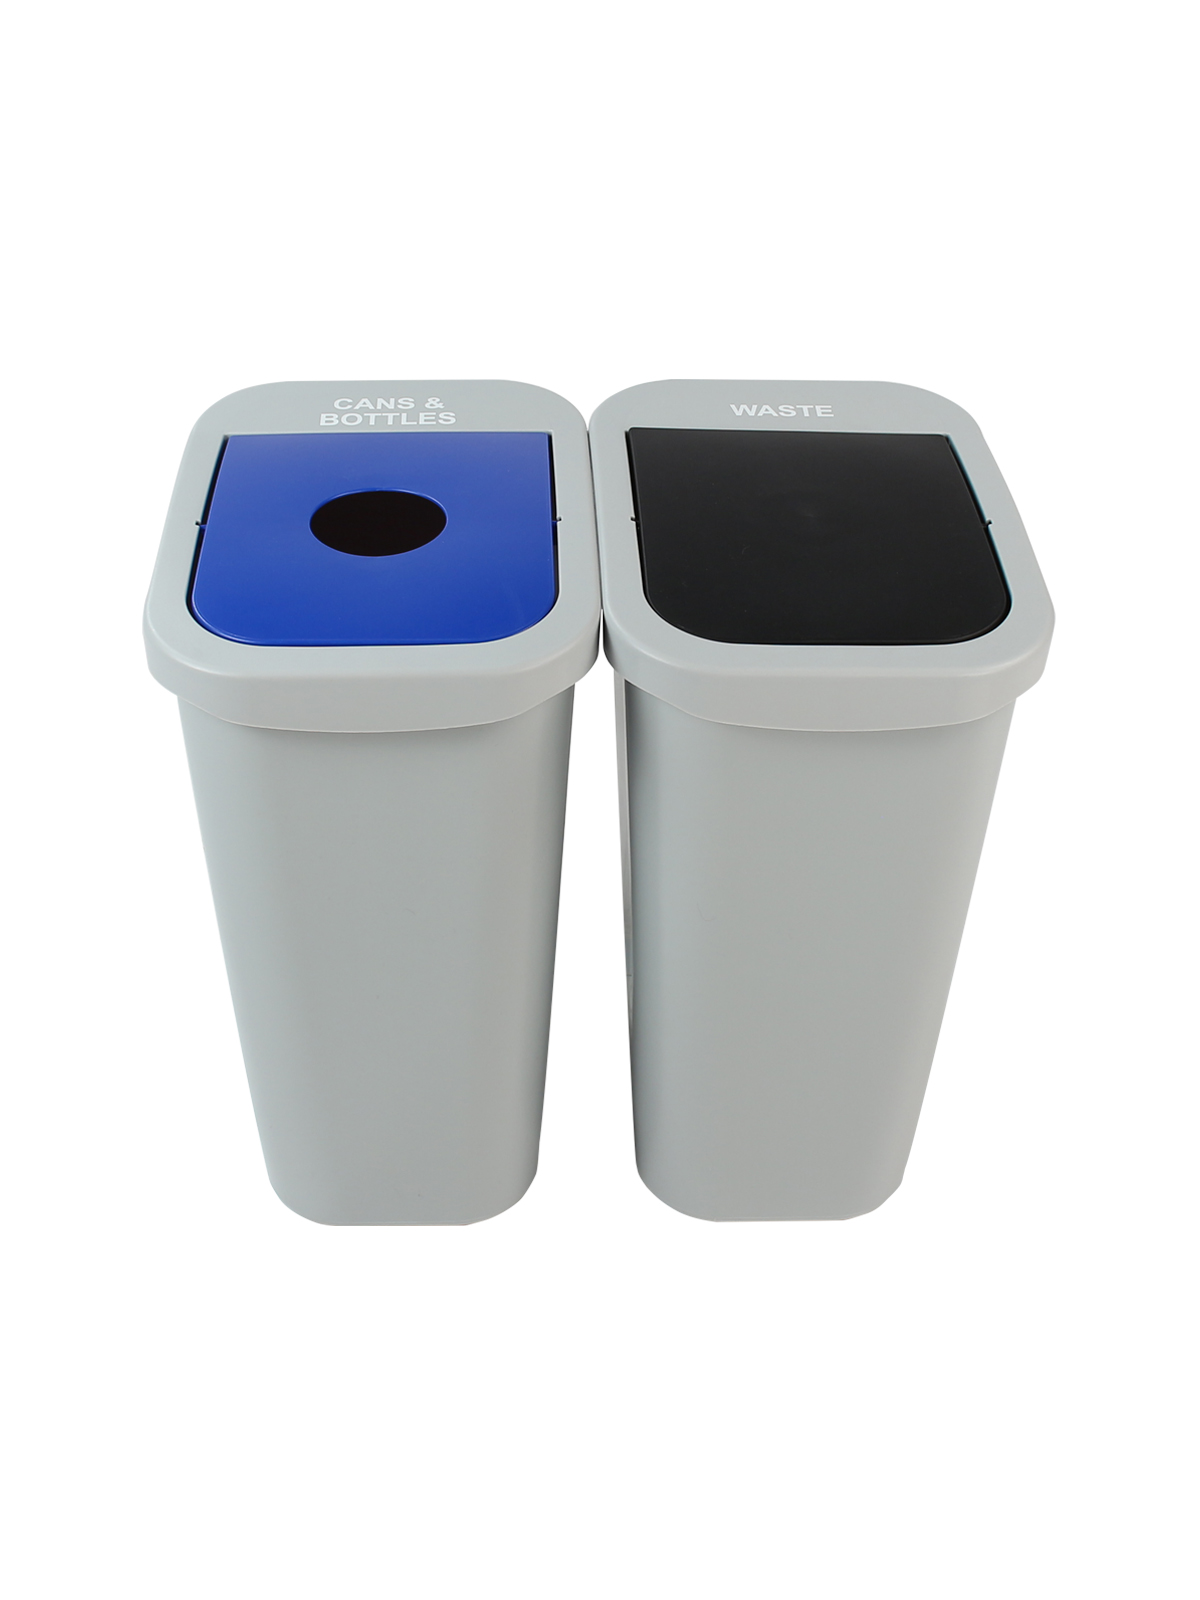 BILLI BOX - Double - 10 G - Cans & Bottles-Waste - Circle-Swing - Grey-Blue-Black